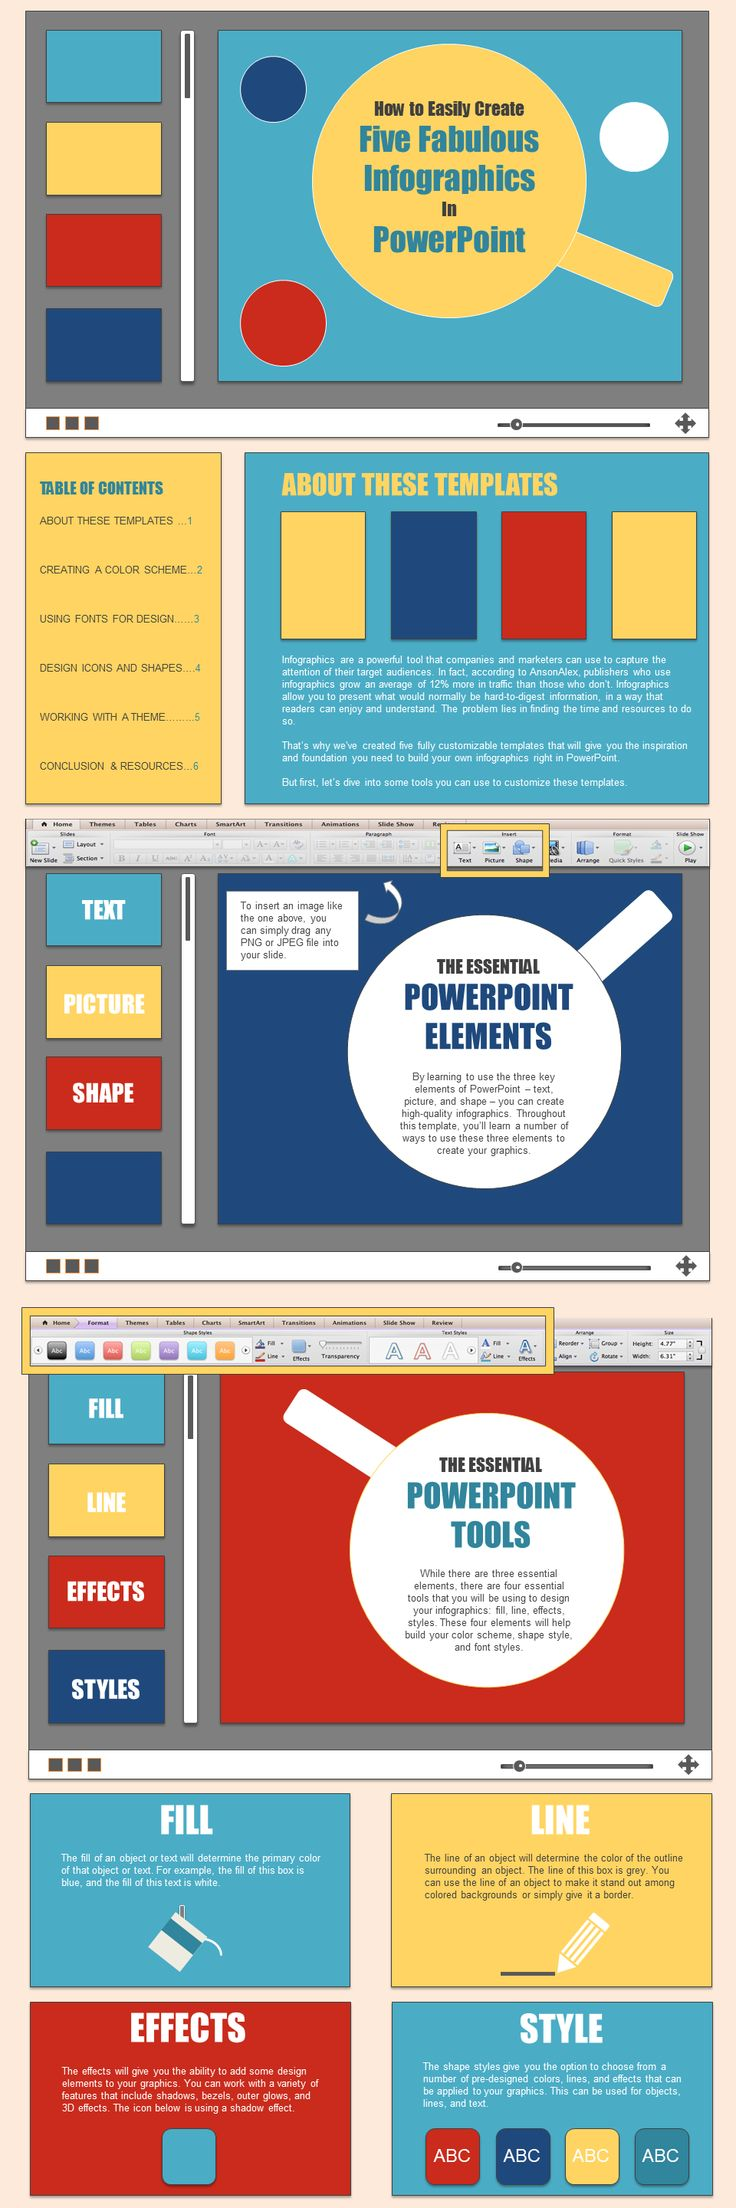 Free online infographic builder